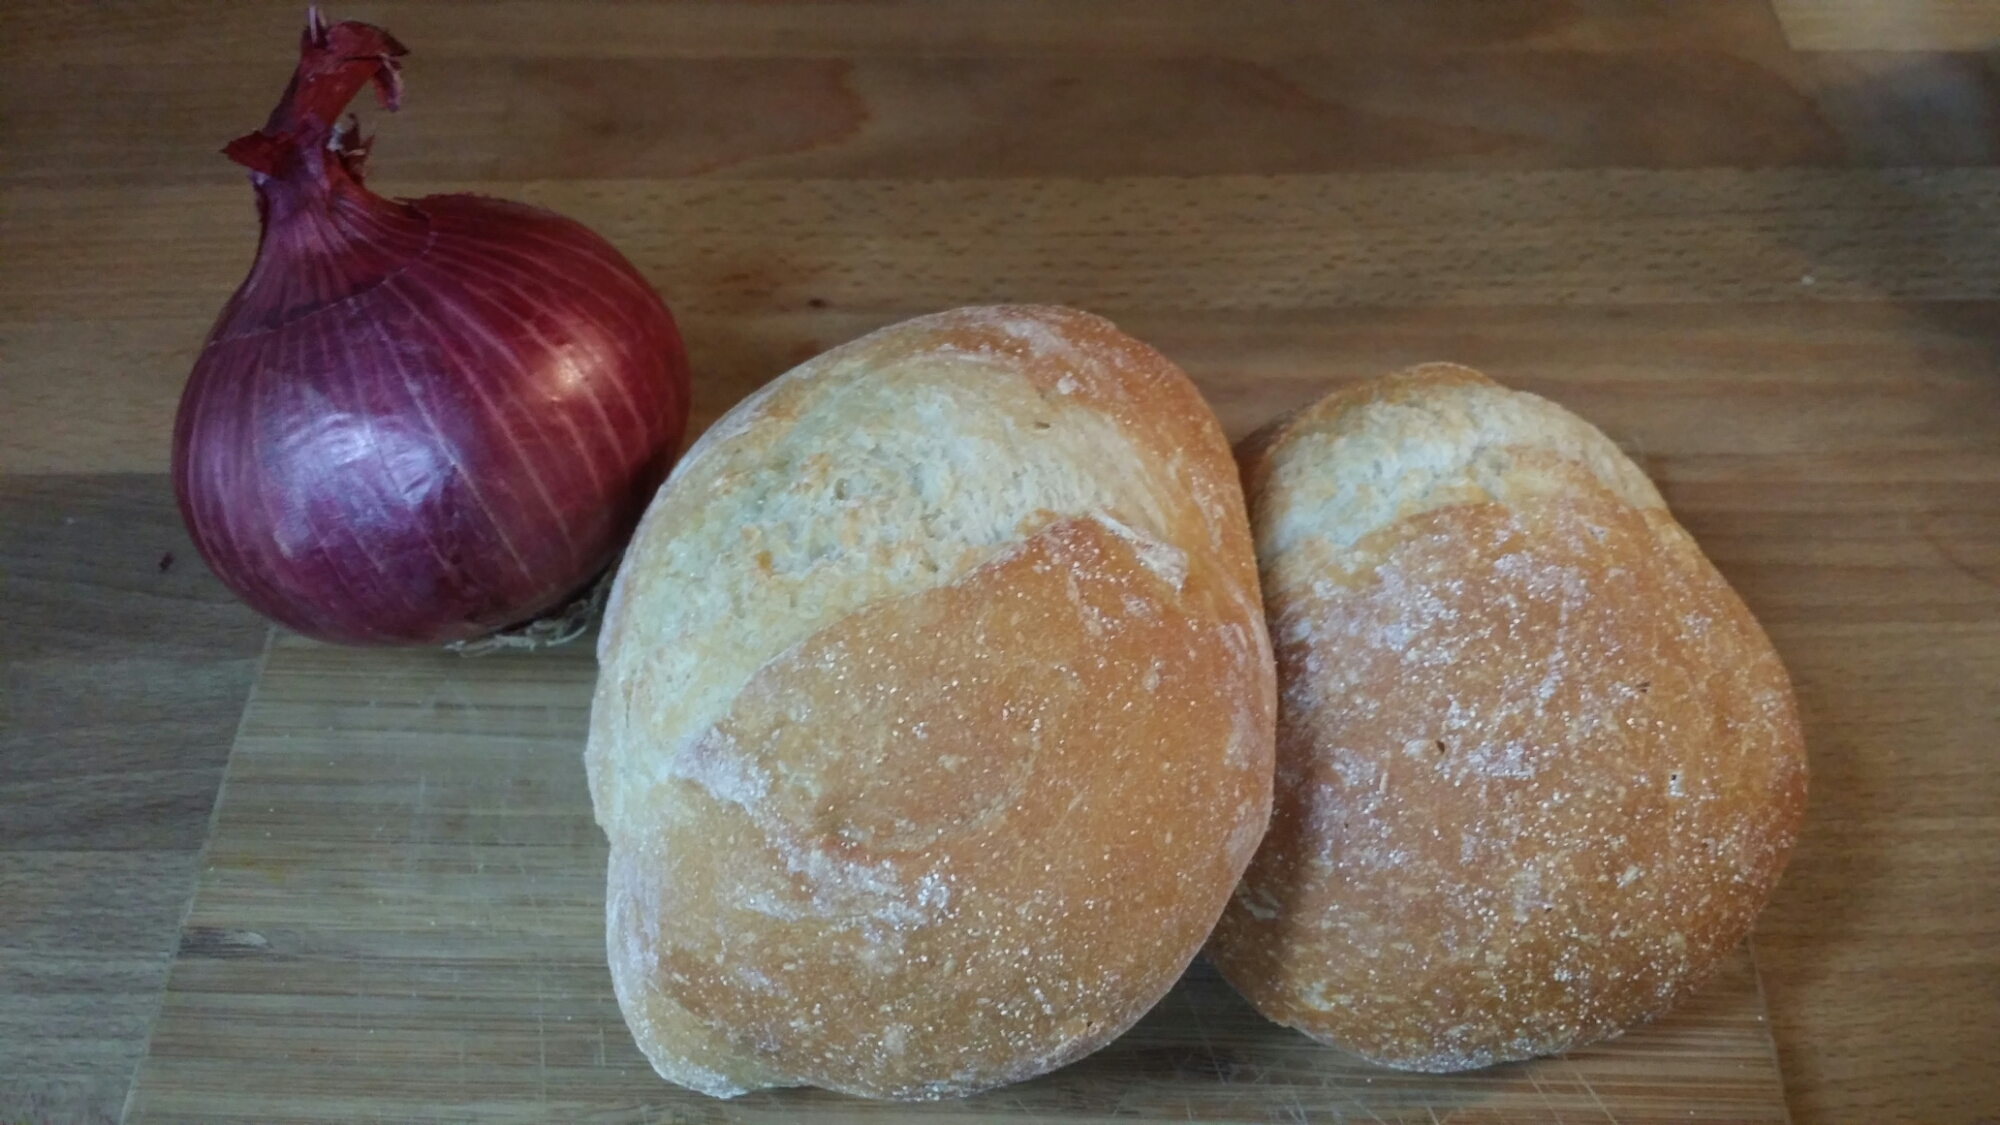 Red Onion and Rolls